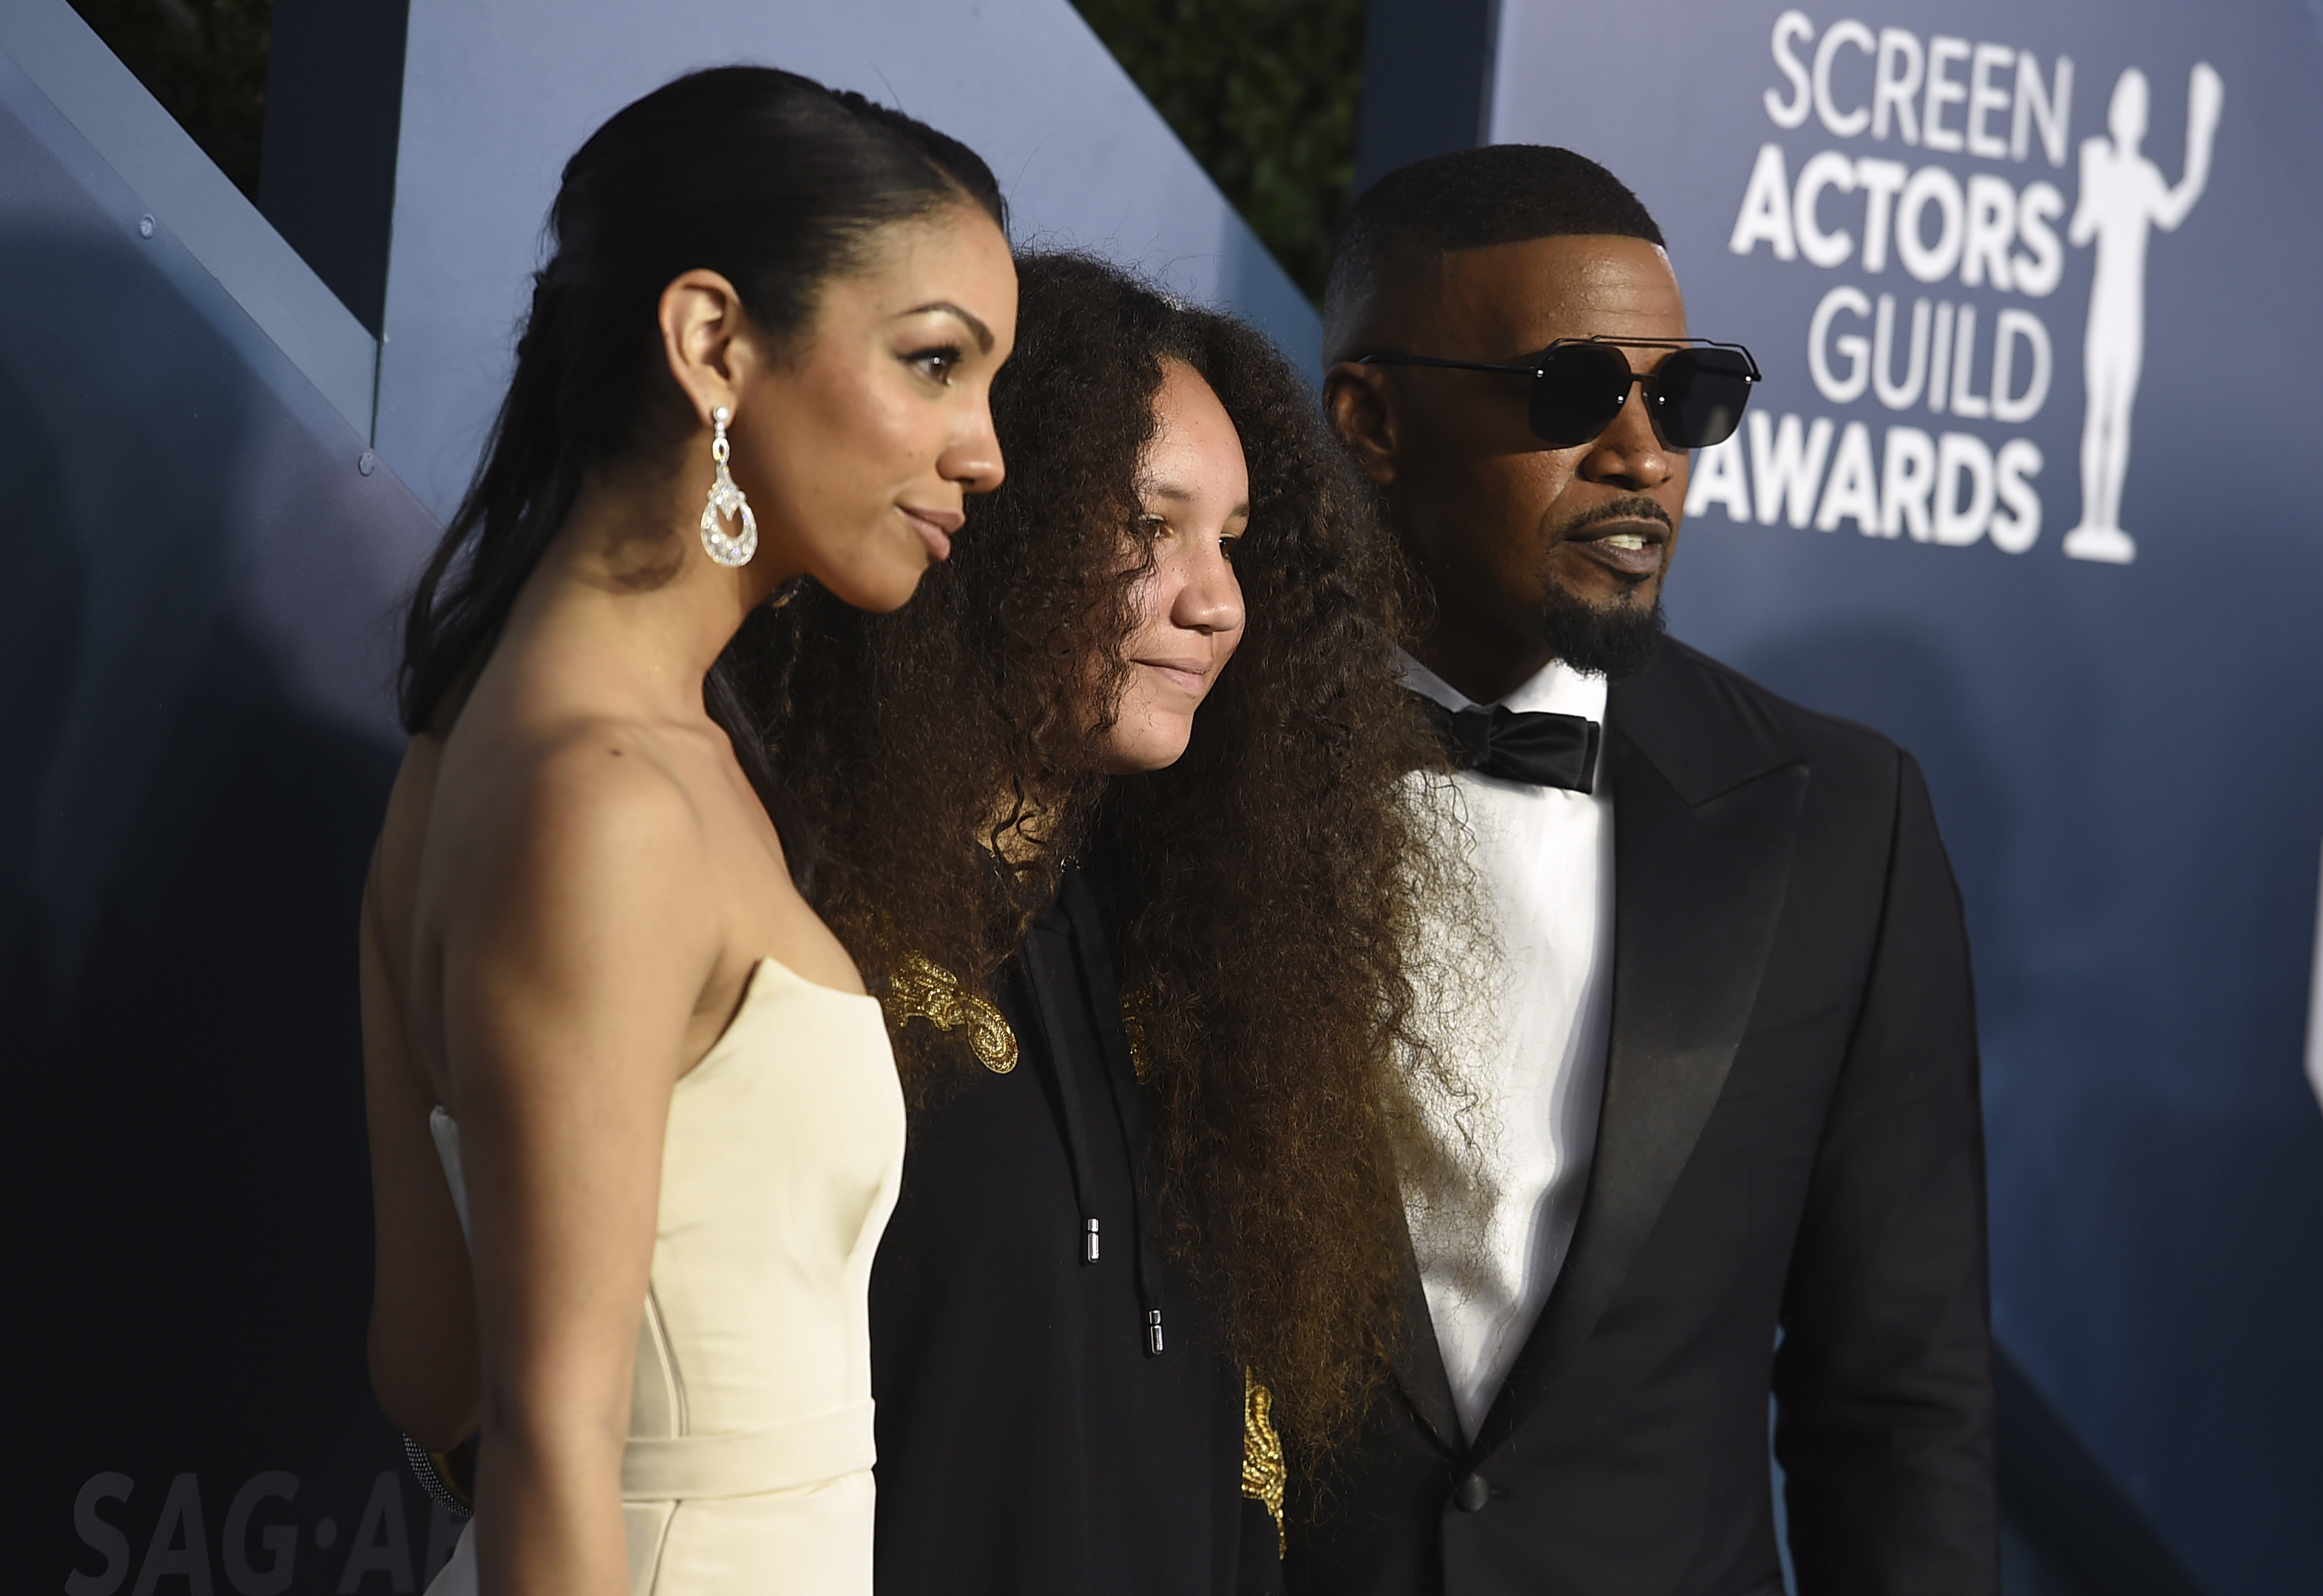 Actor-singer Jamie Foxx poses with his daughters Corinne Foxx (left) and Anelise Bishop at the 26th annual Screen Actors Guild Awards in Los Angeles on Jan. 19, 2020.